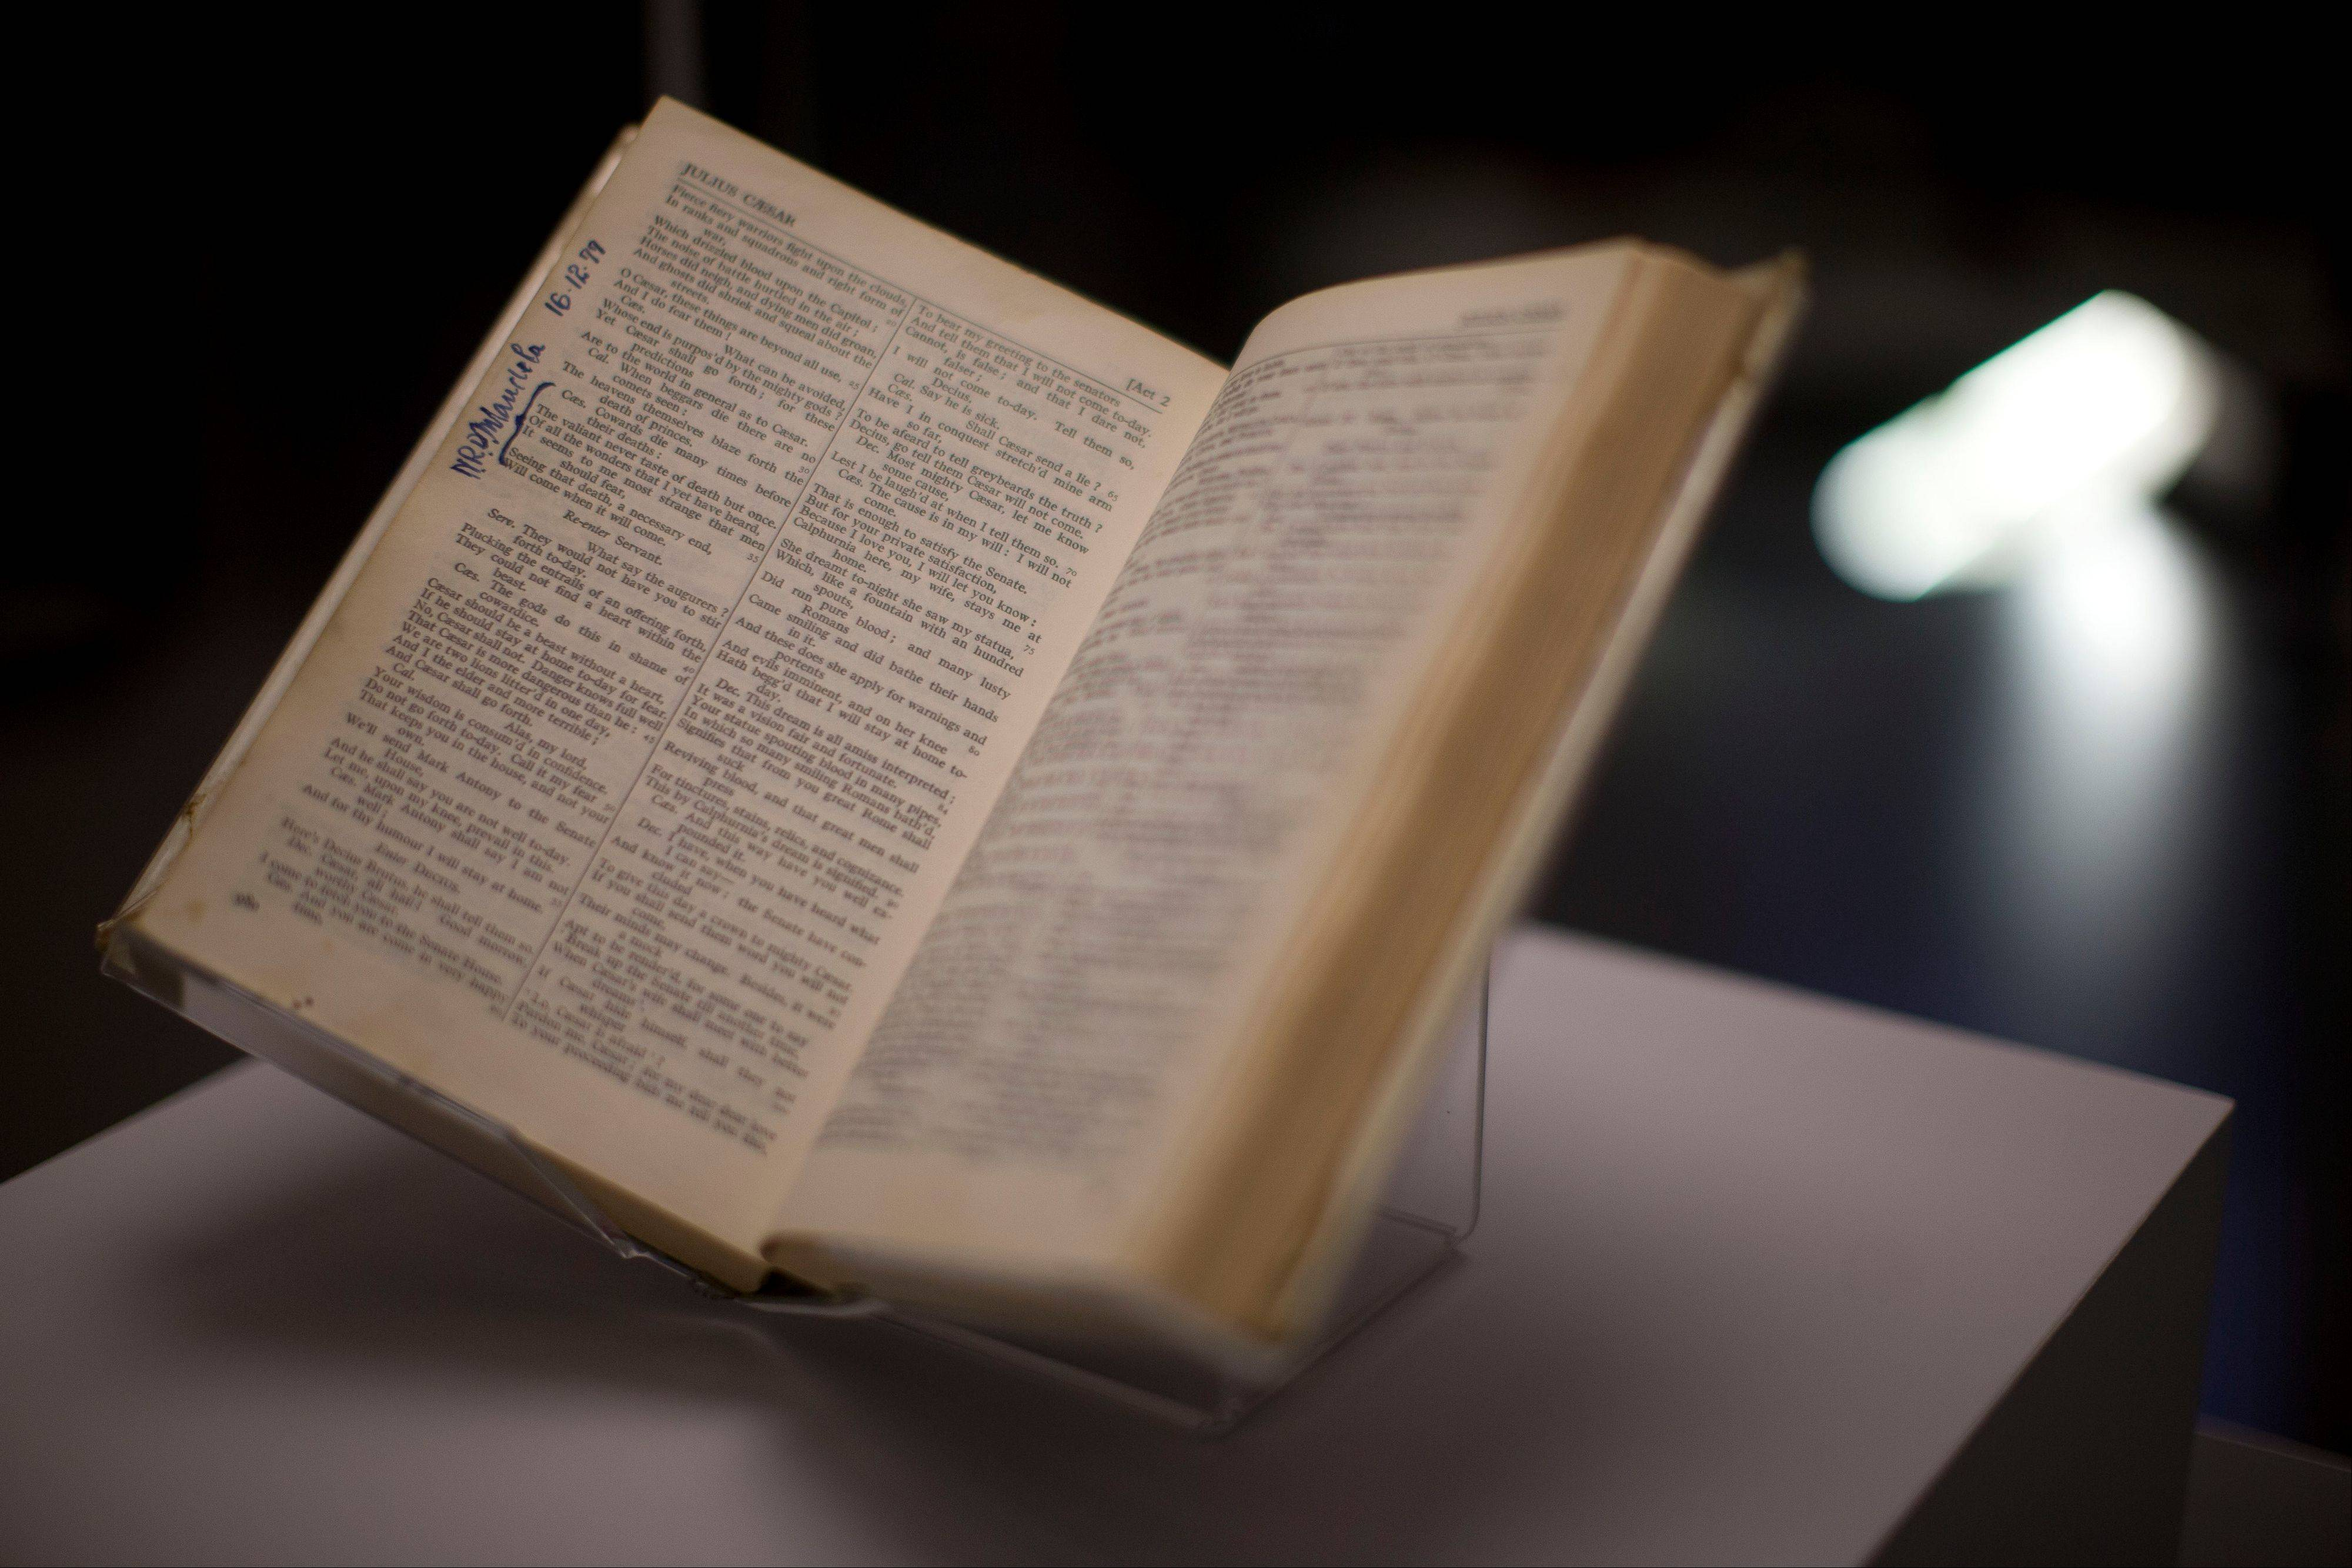 "A copy of the ""Complete Works of Shakespeare"" is displayed and signed by Nelson Mandela and owned by Sonny Venkatrathnam, who was imprisoned on Robben Island in South Africa, during the press view of the ""Shakespeare: staging the world"" exhibition at the British Museum in London, Wednesday, July 18, 2012. The exhibition, which is being held as part of the London 2012 cultural Olympiad, provides a unique insight into the emerging role of London as a world city 400 years ago, seen through the innovative perspective of Shakespeare's plays. It runs from July 19 to November 25."